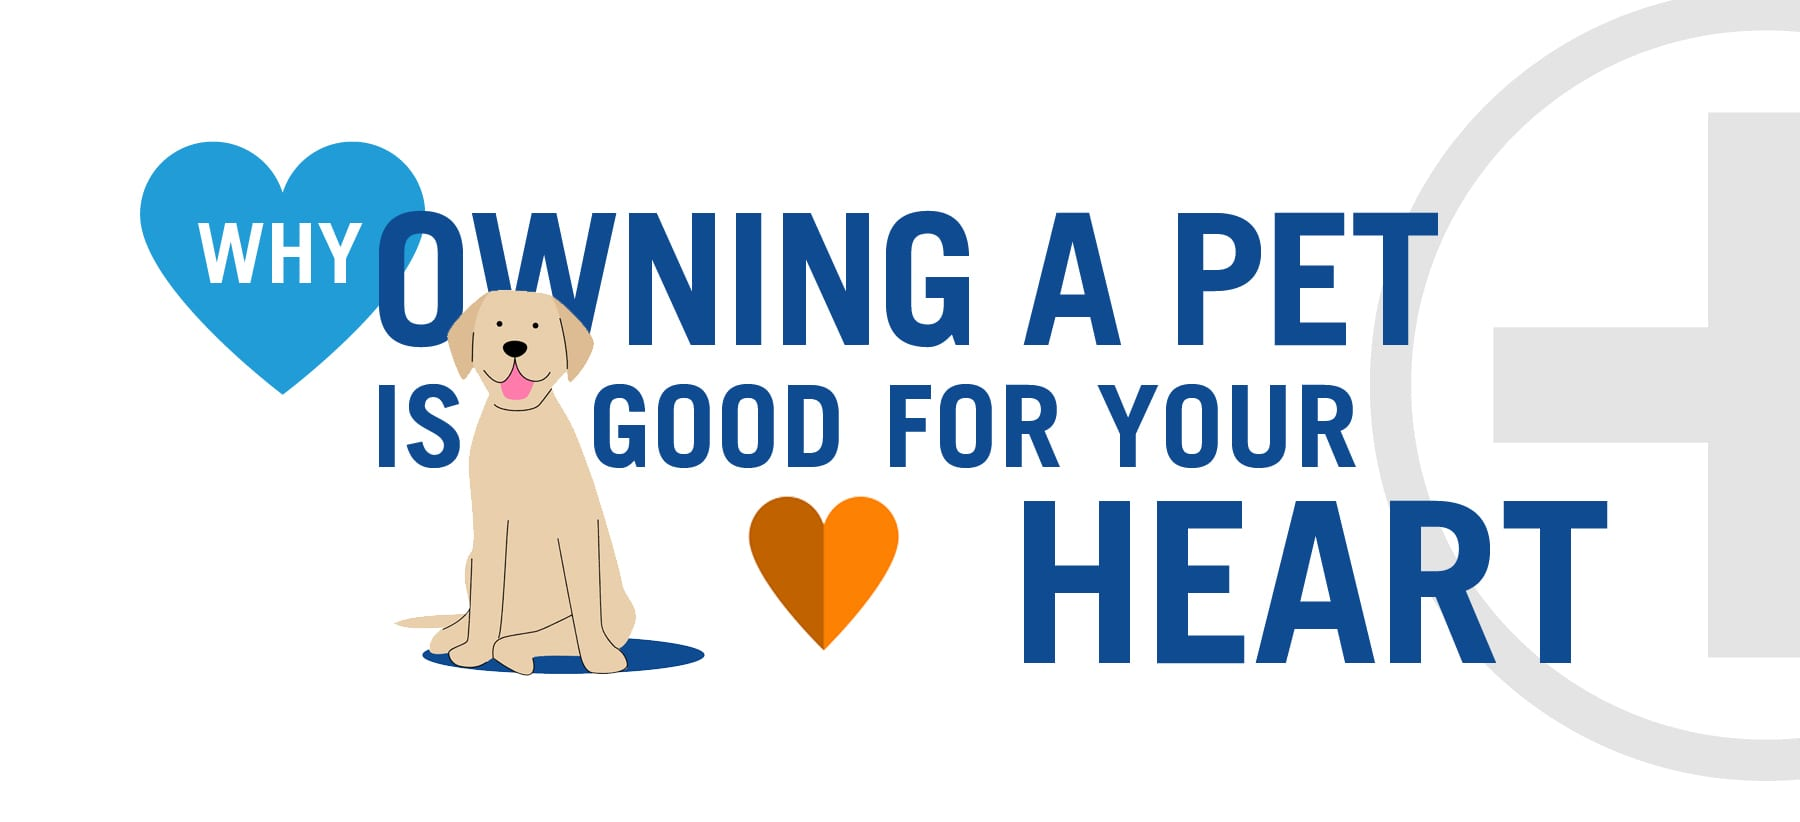 heart, Why Owning a Pet is Good For Your Heart – Infographic, Vetericyn Animal Wellness